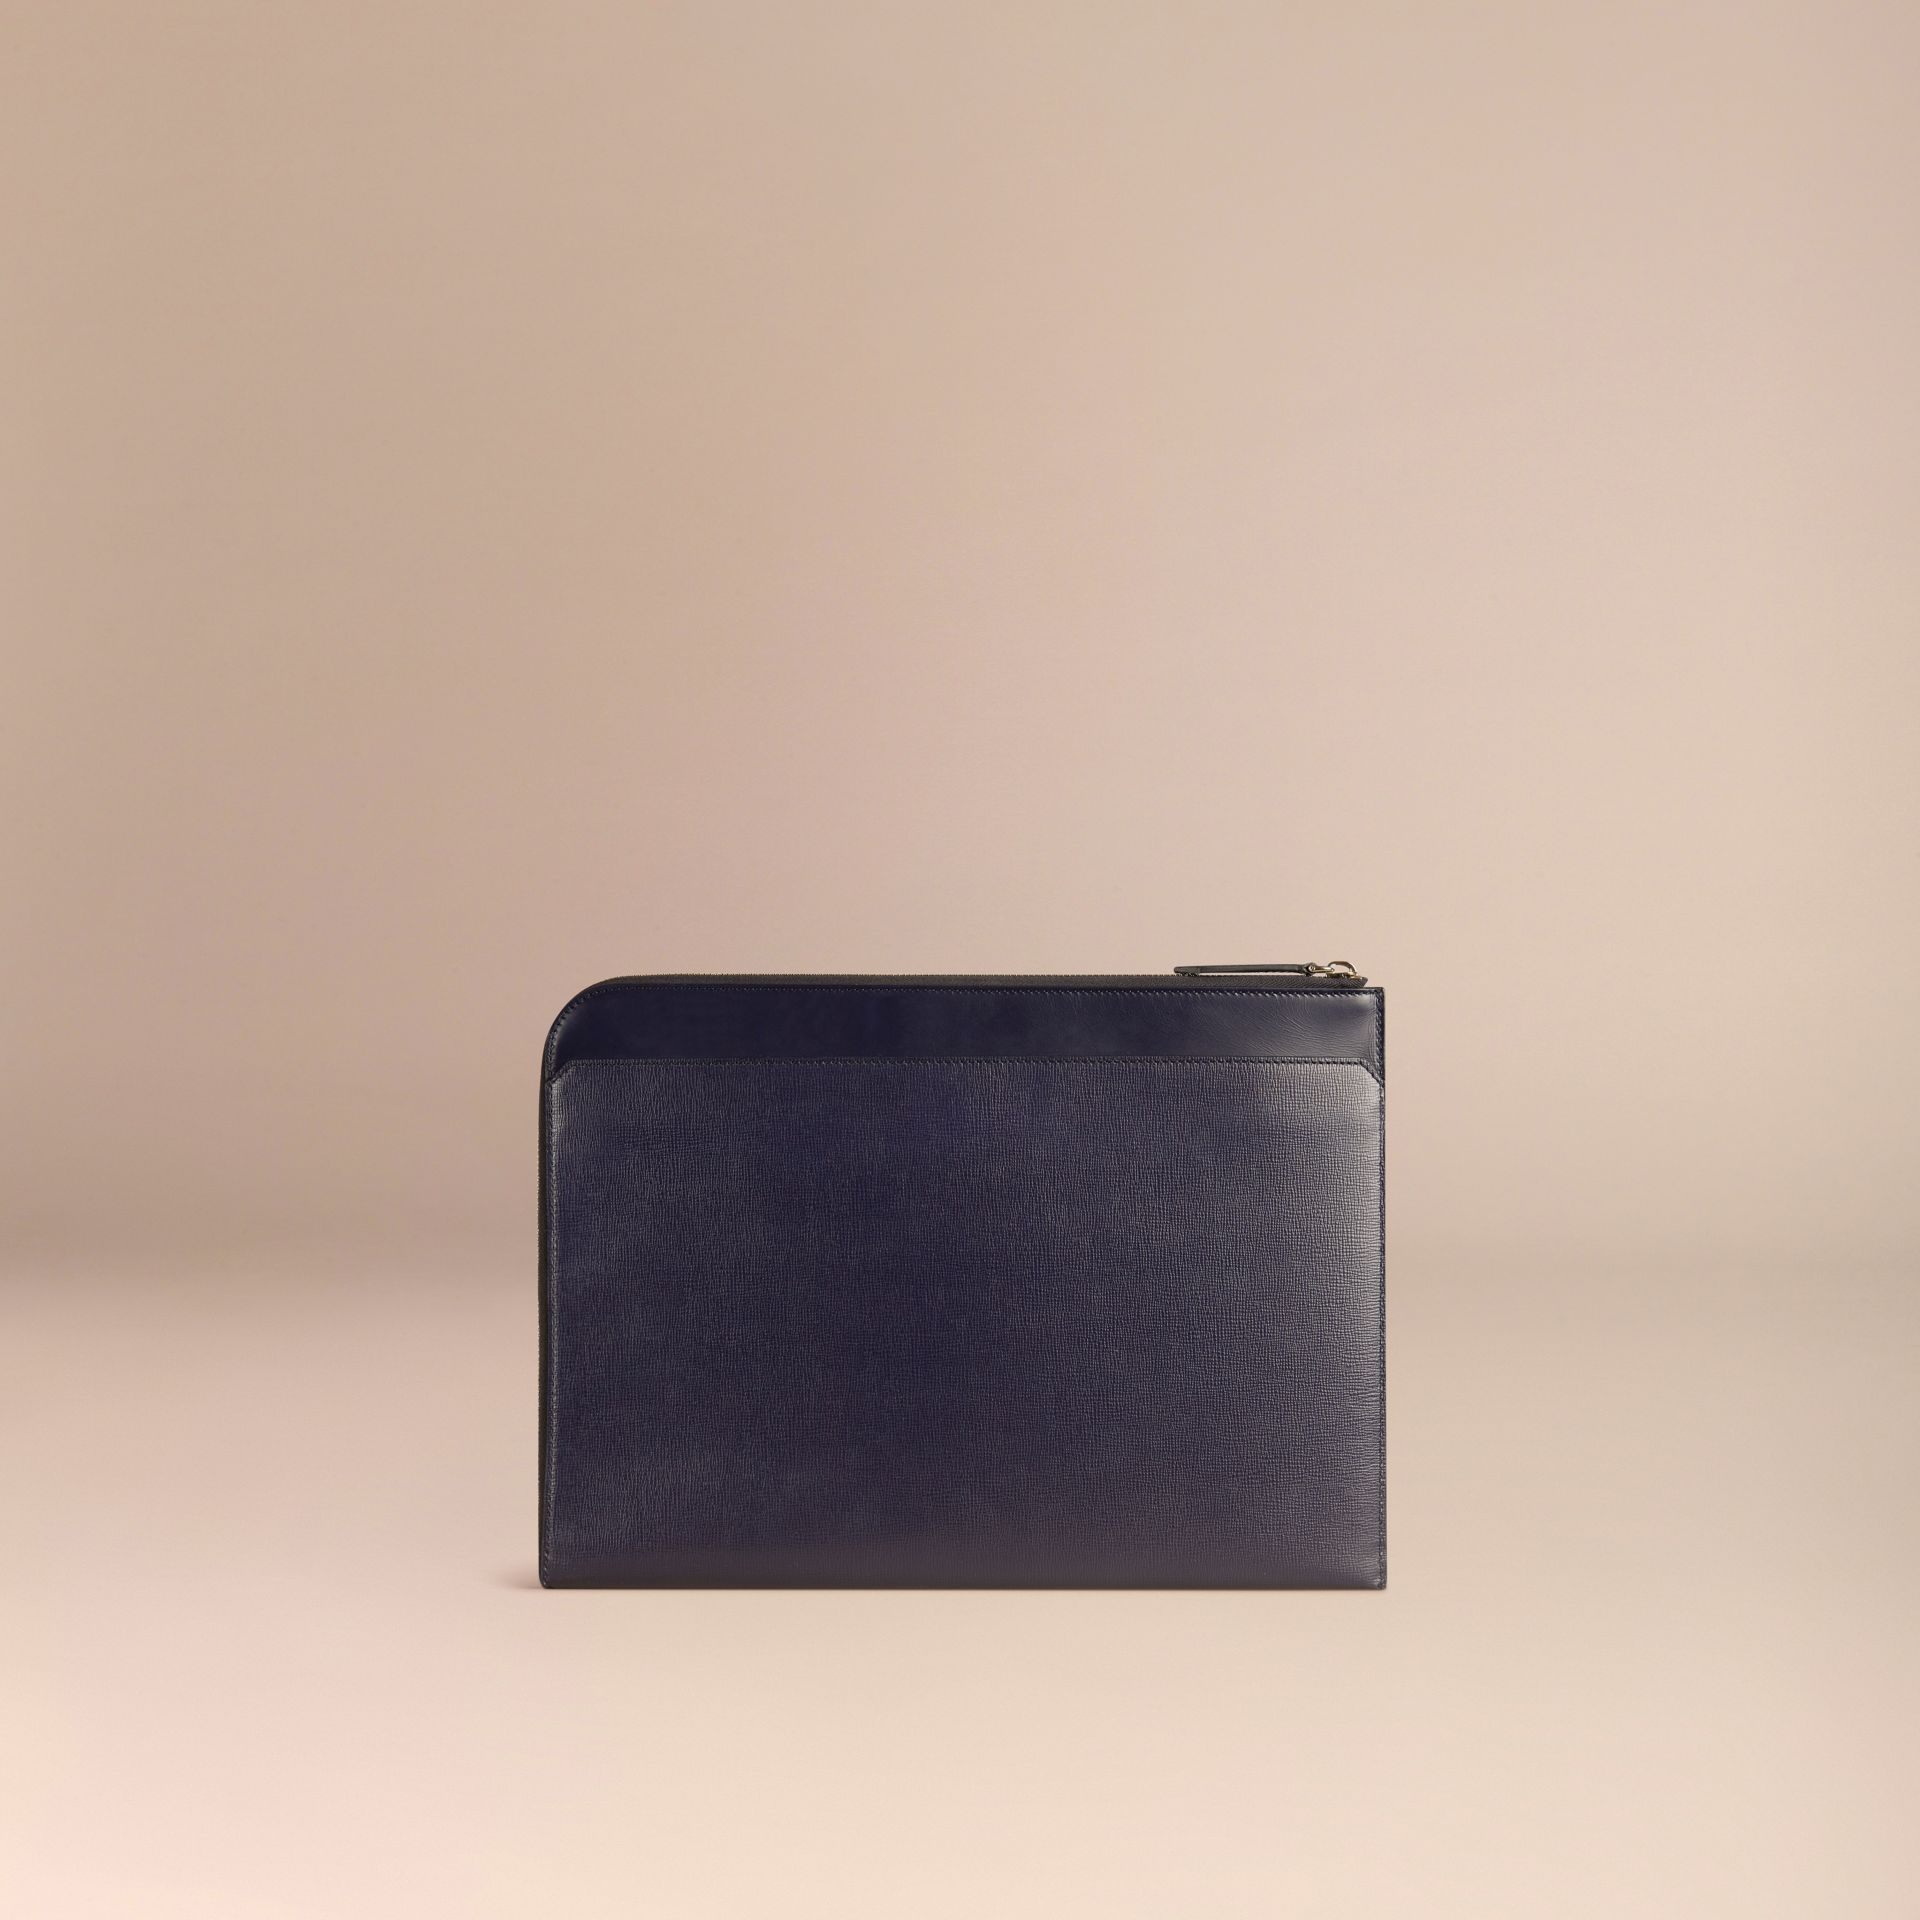 Dark navy London Leather Document Case Dark Navy - gallery image 4